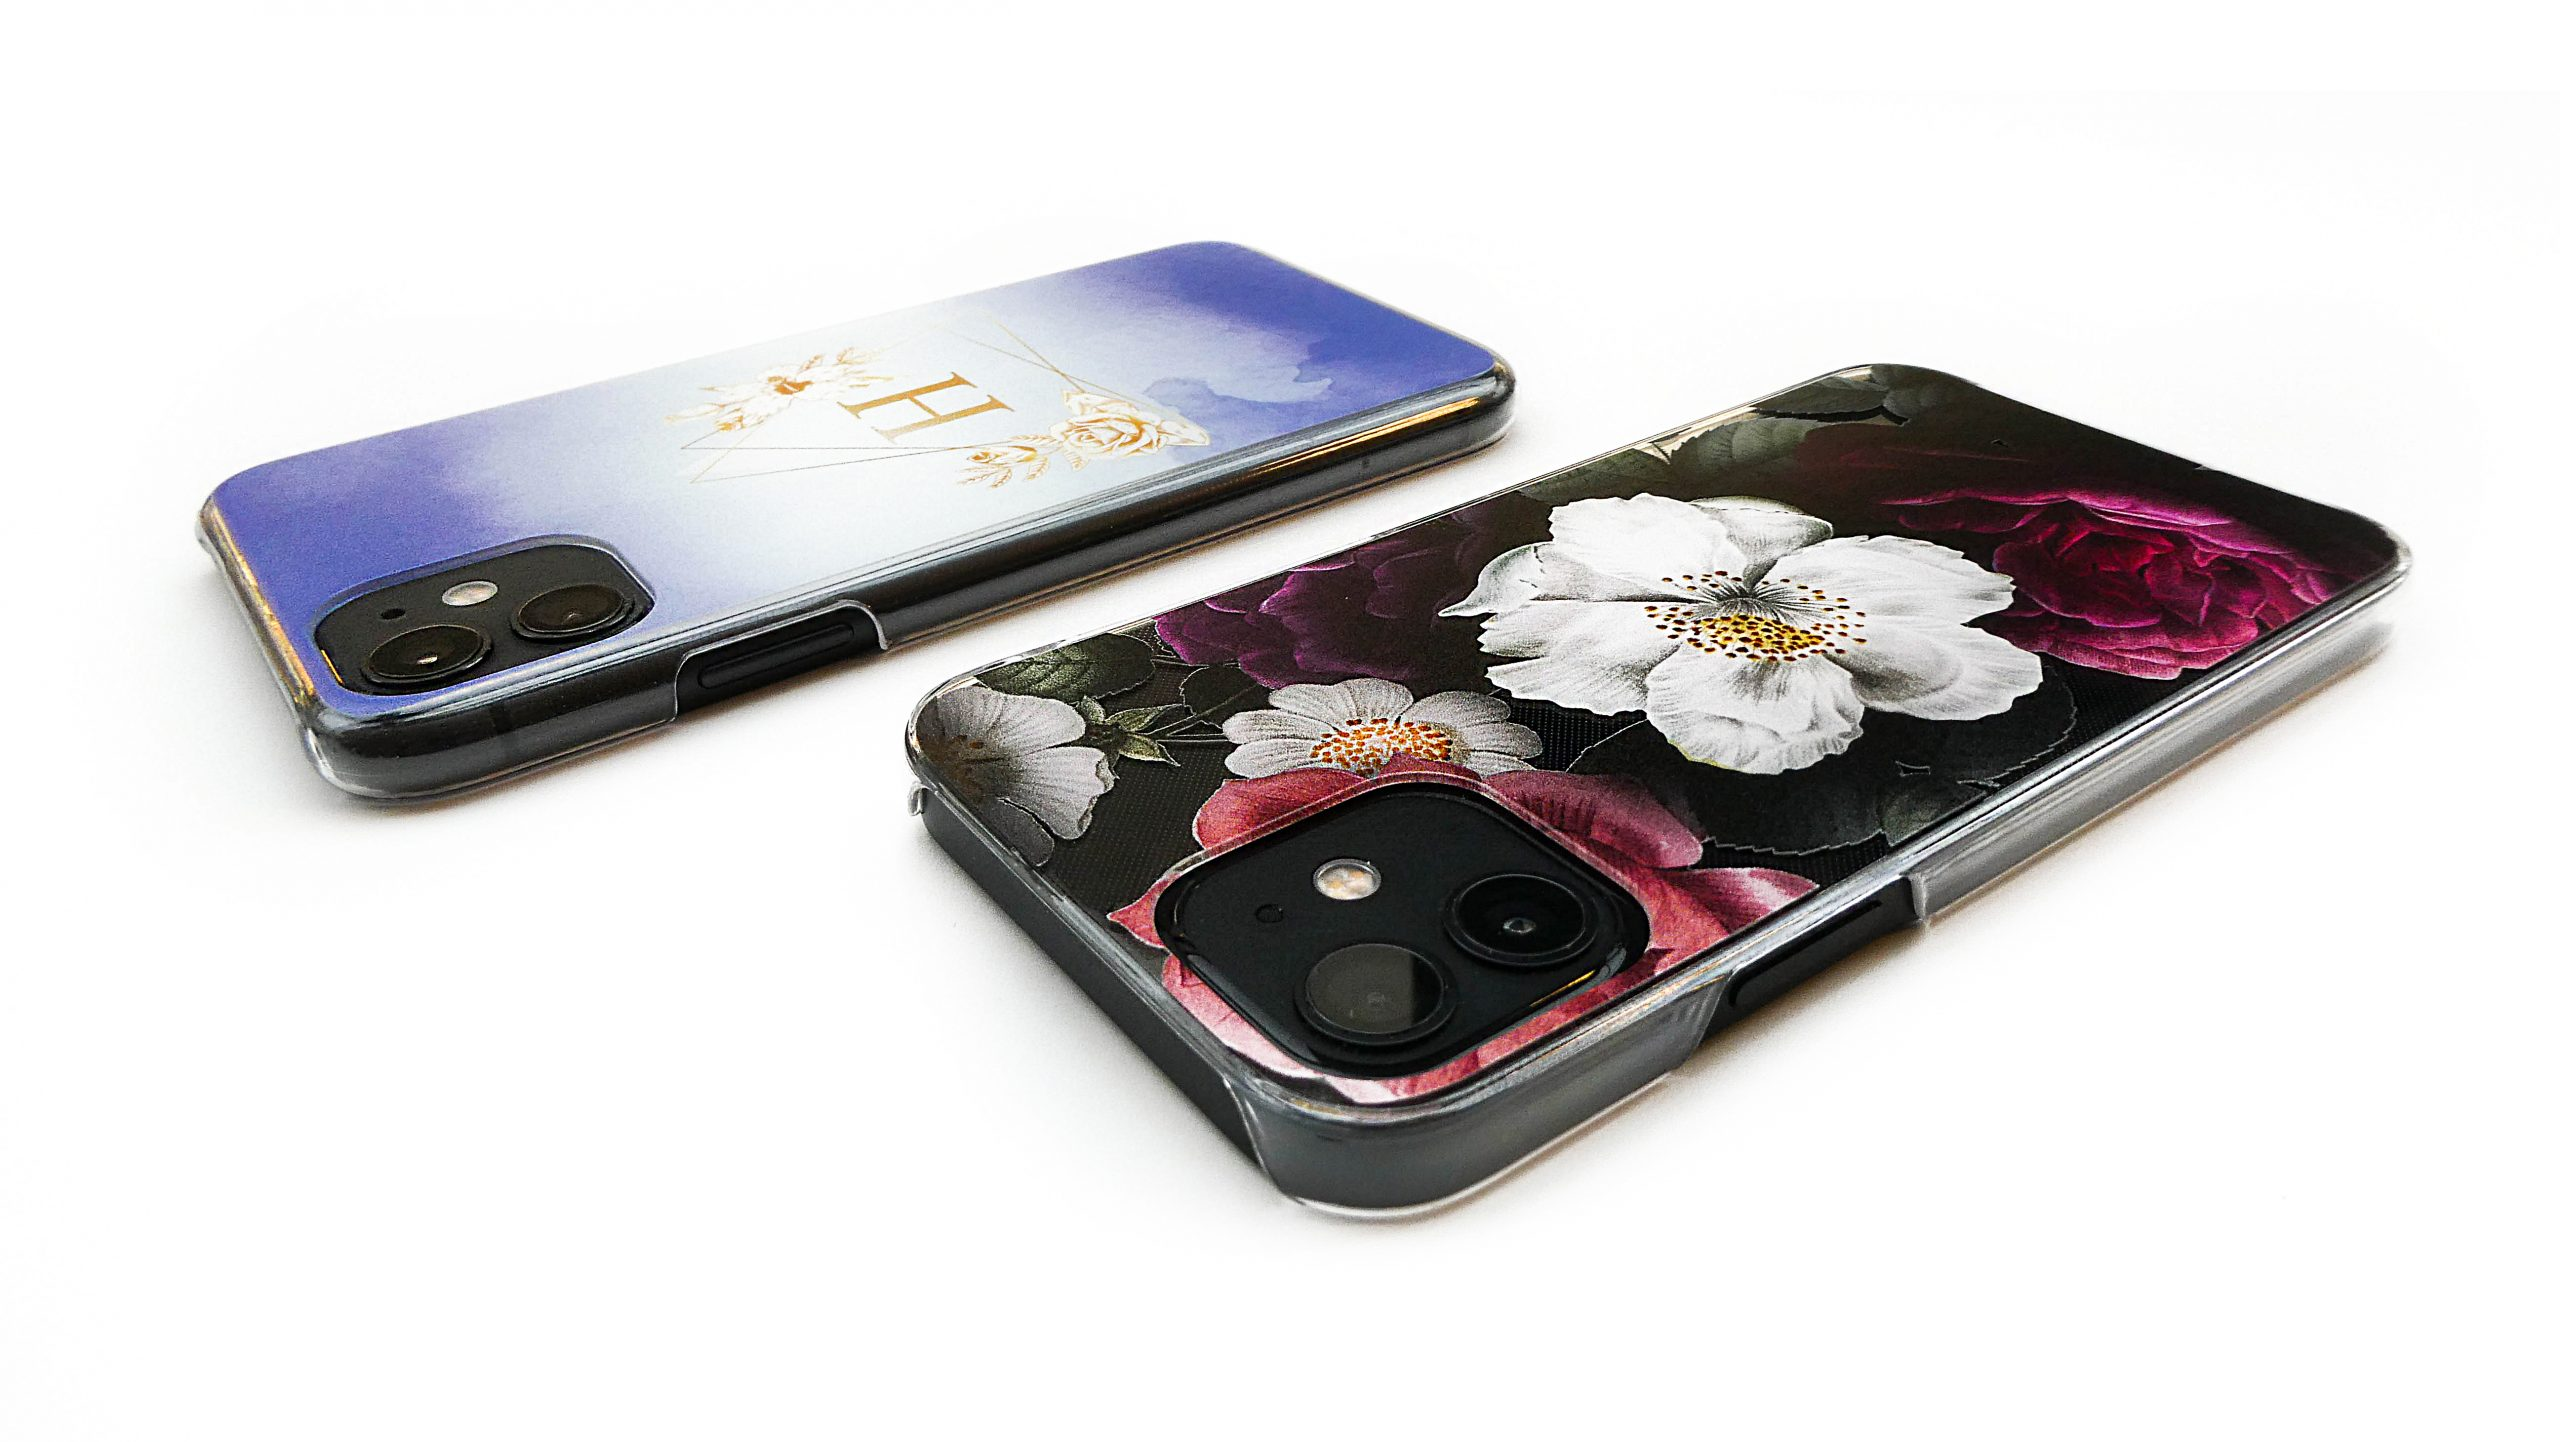 custom back printed phone cases (transparent, black and hard cases)